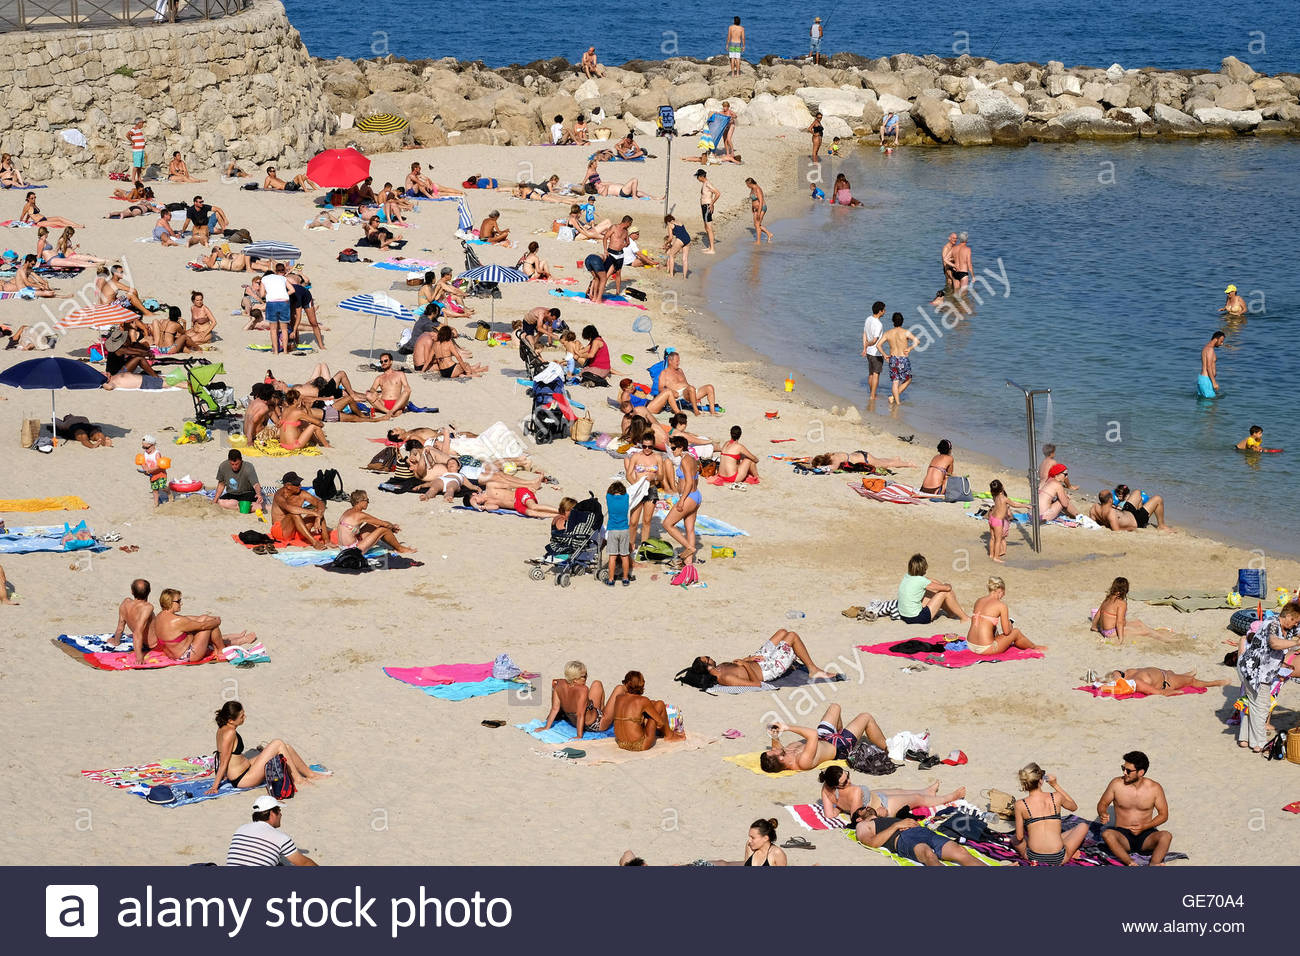 A busy beach scene on a lovely, hot sunny day in Antibes, France - Stock Image